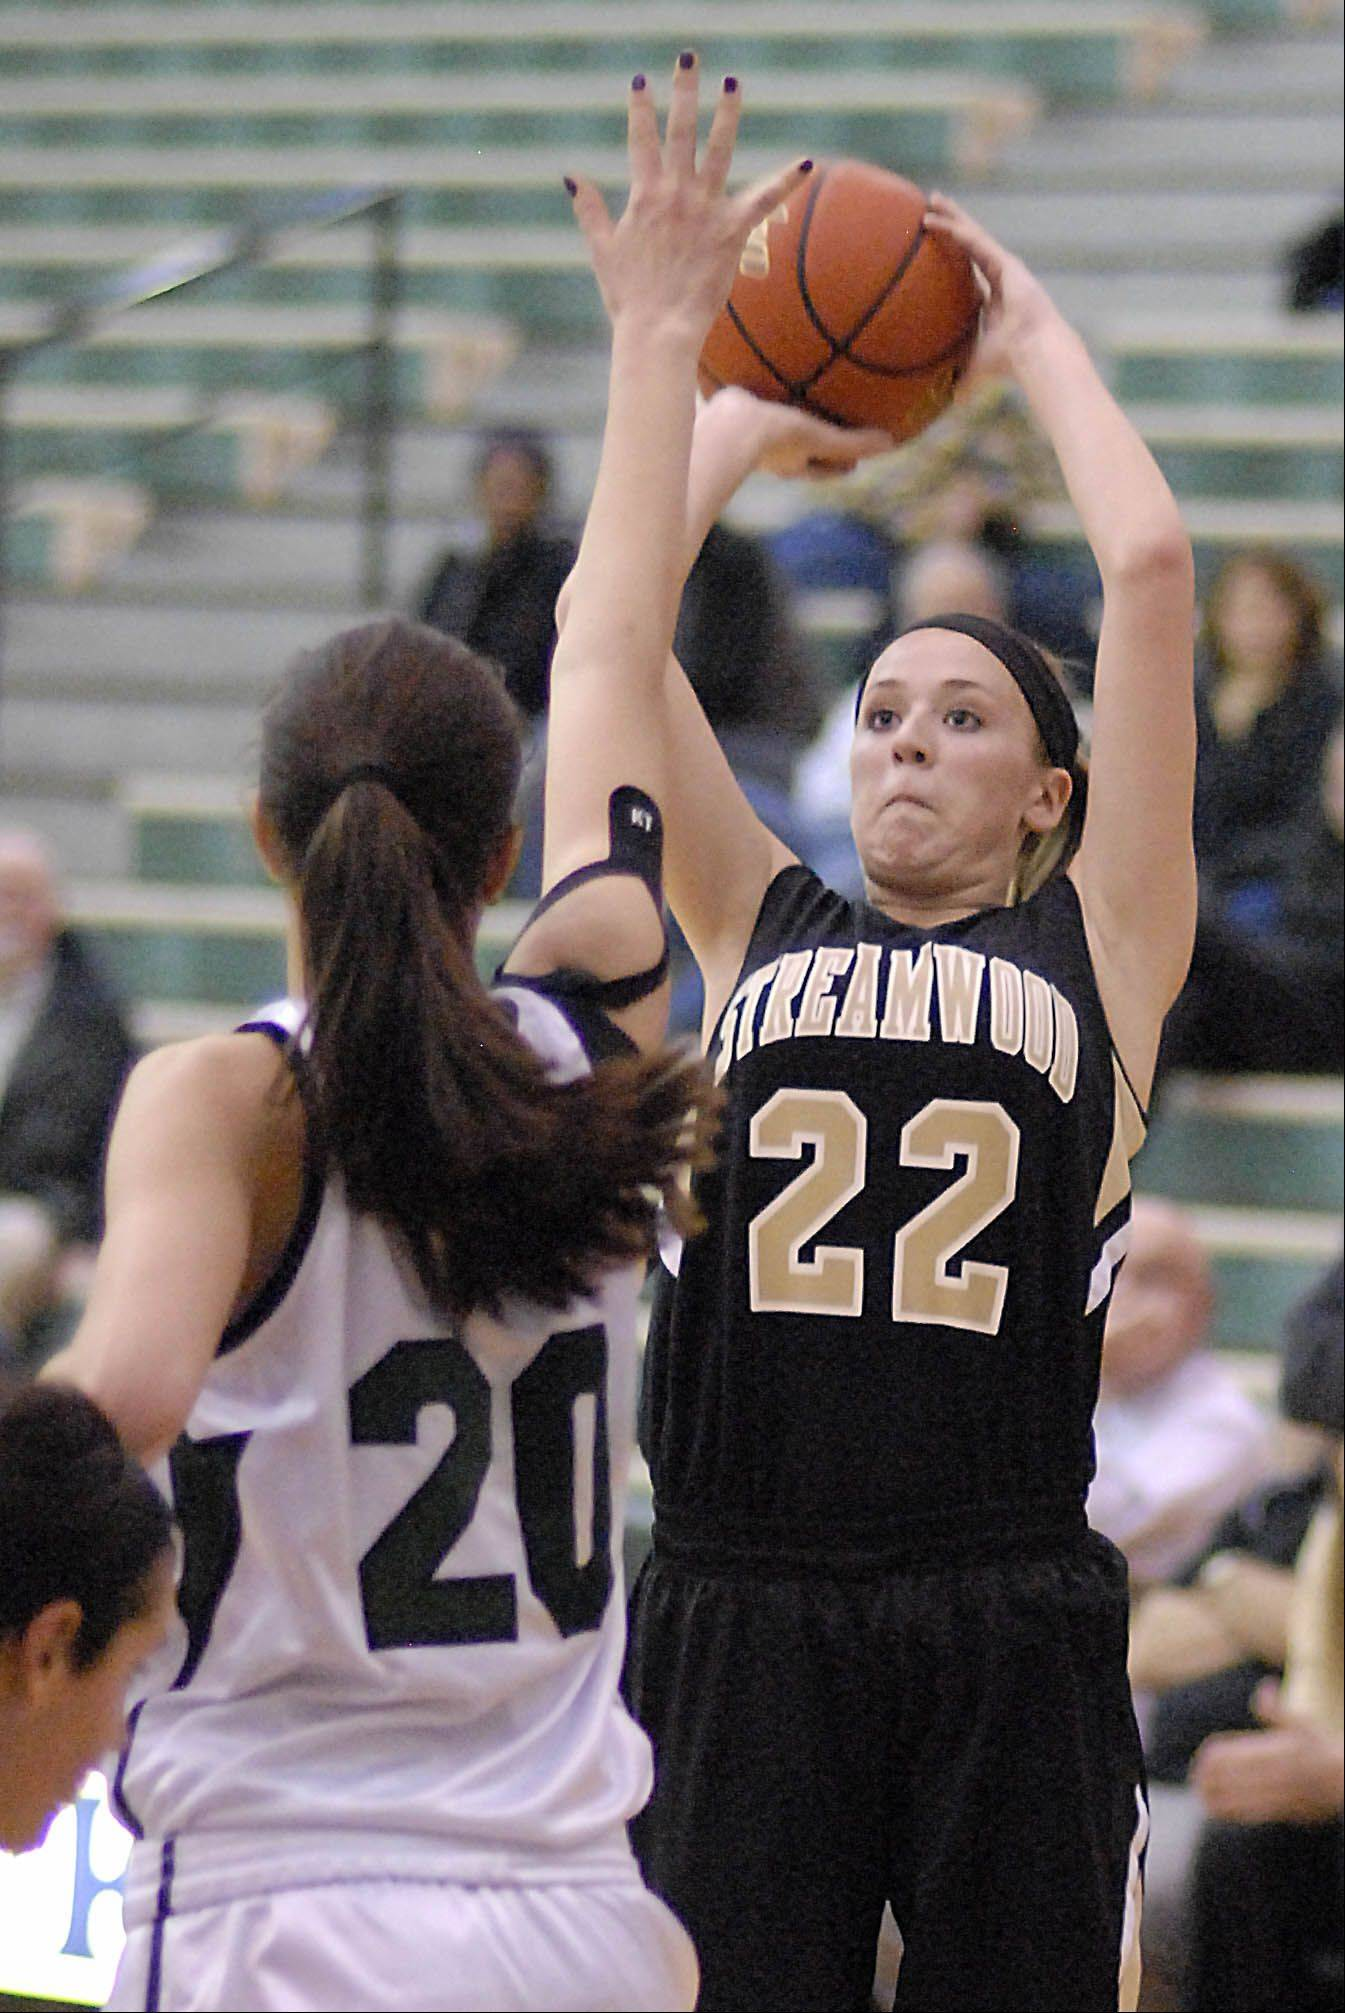 Streamwood's Holly Foret shoots over a block by Bartlett's Elizabeth Arco in the third quarter.